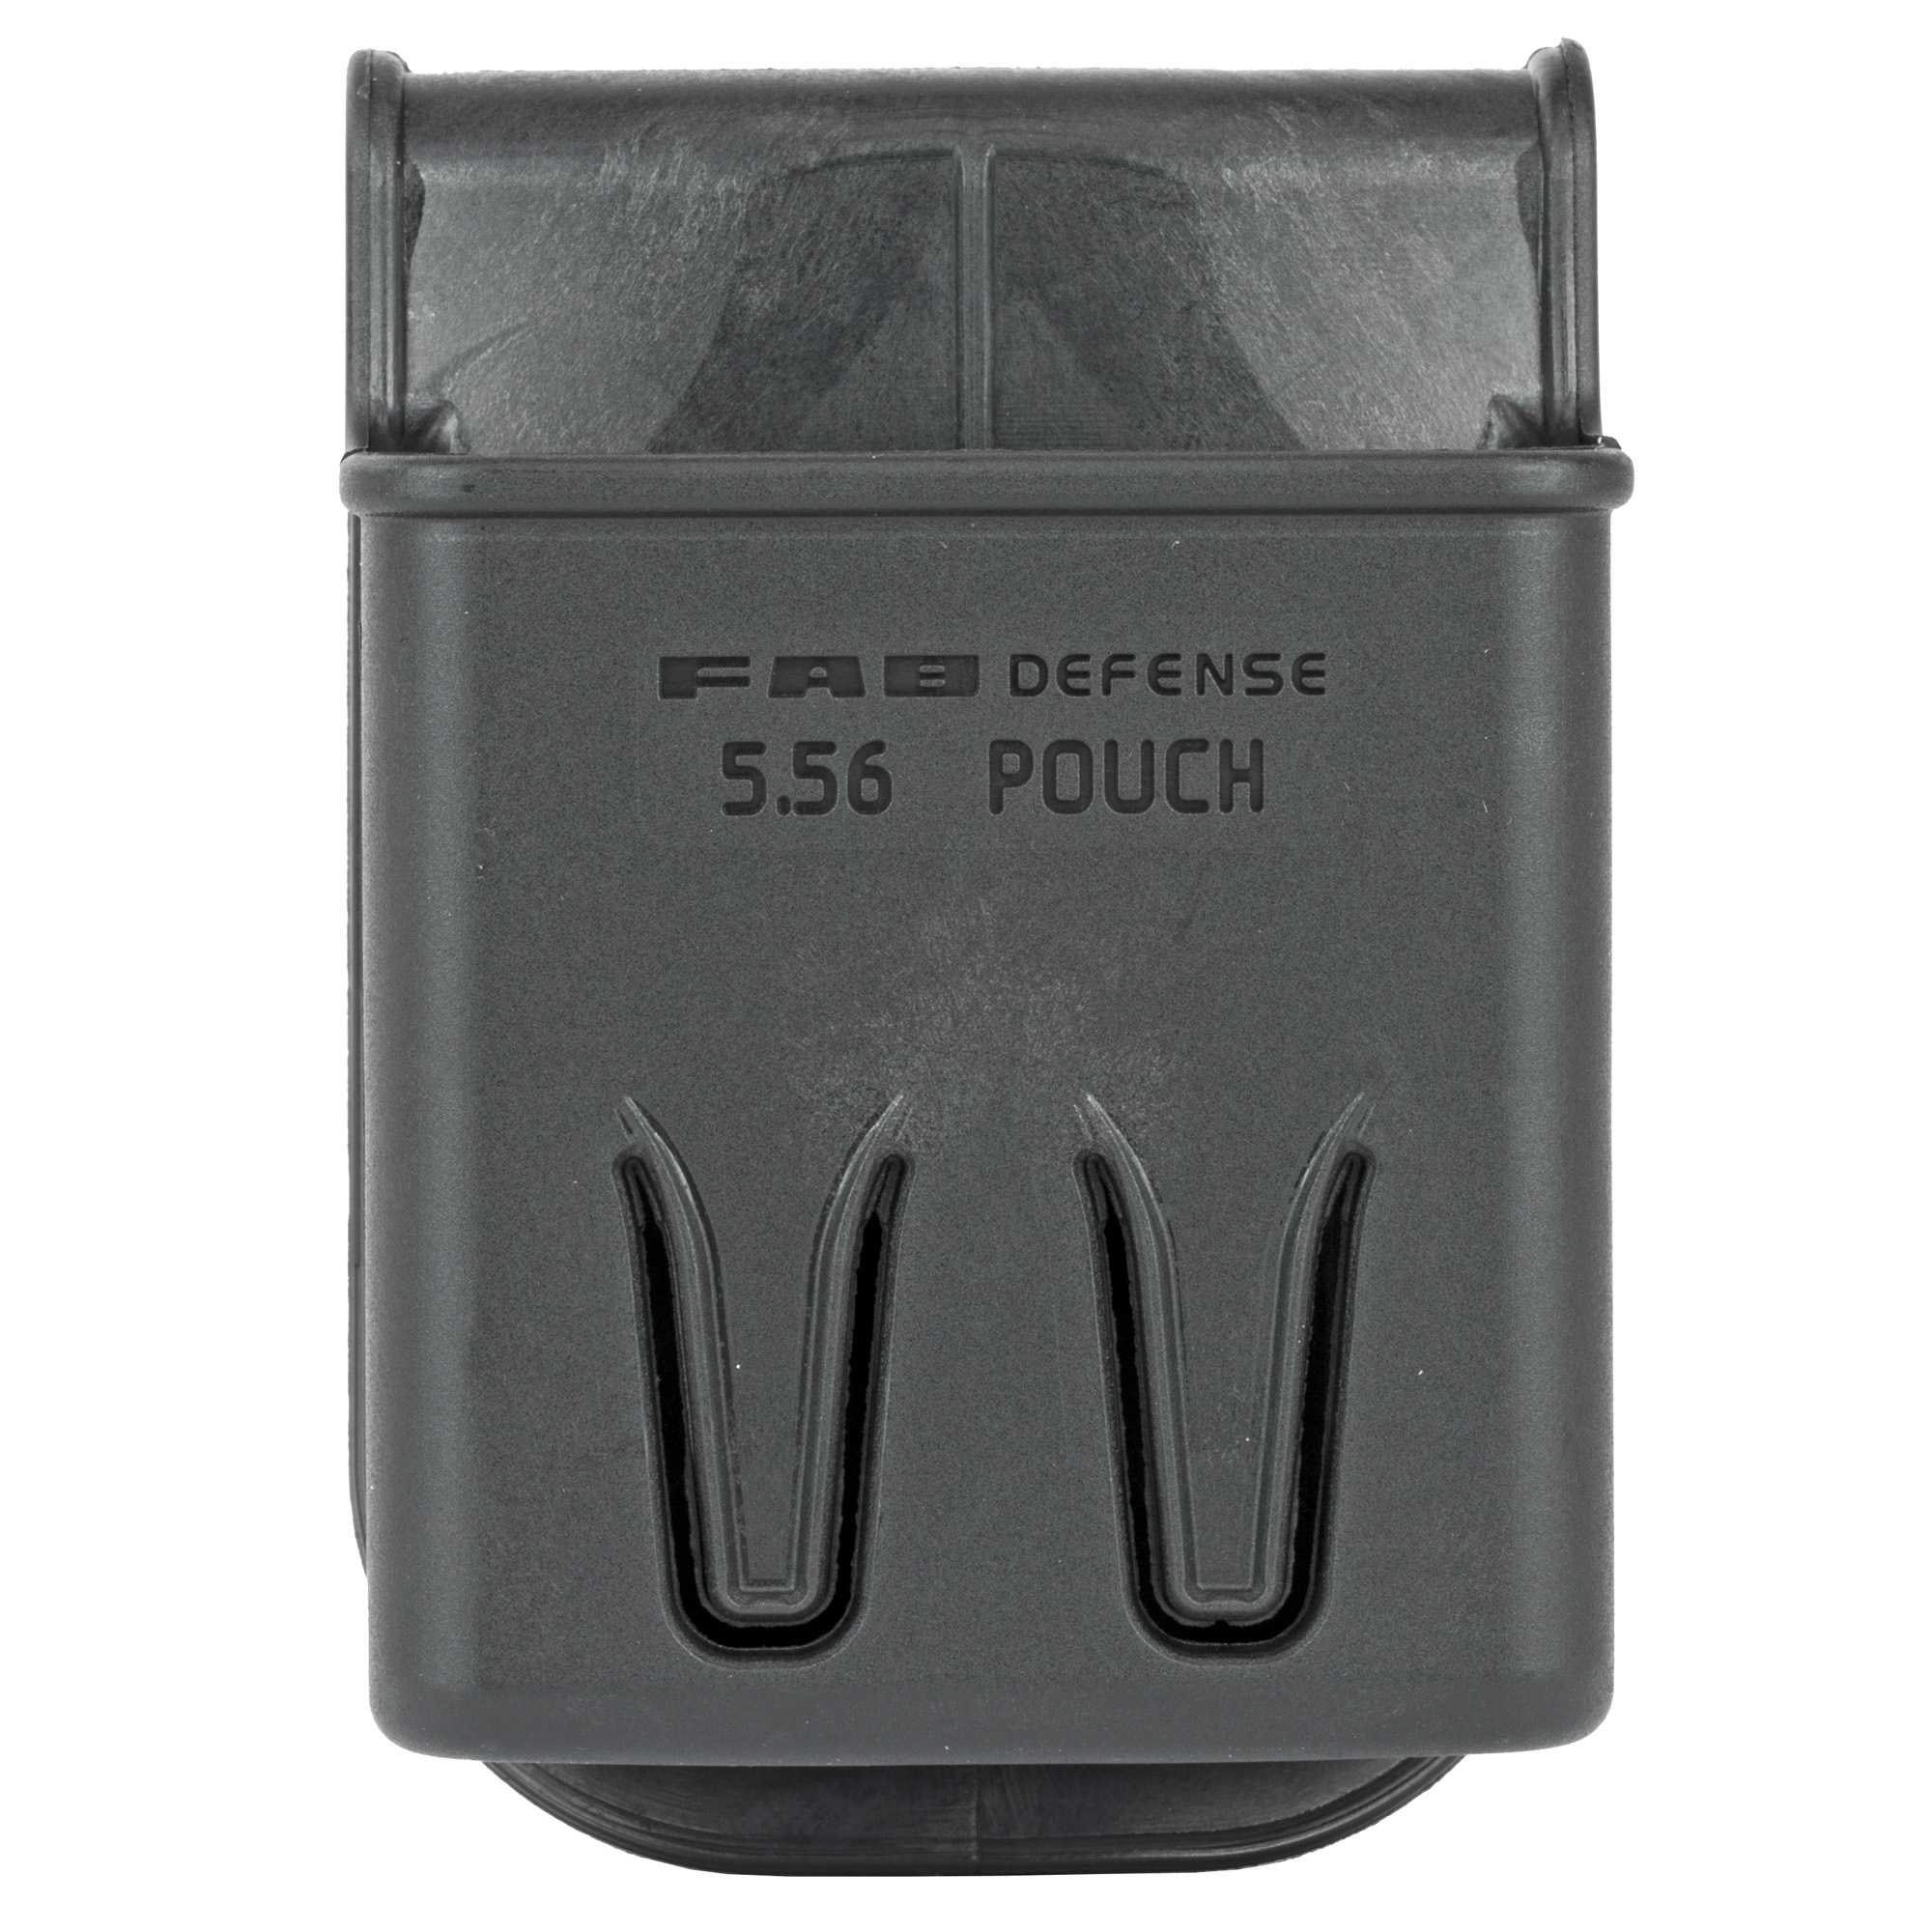 "The M4 Magazine Pouch is a firm durable magazine pouch which enhances magazine storage and access"" allowing swift & secure clip change. It attaches securely to belt with a paddle shaped insert and the unique click design secures the magazine inside and prevents it from falling."